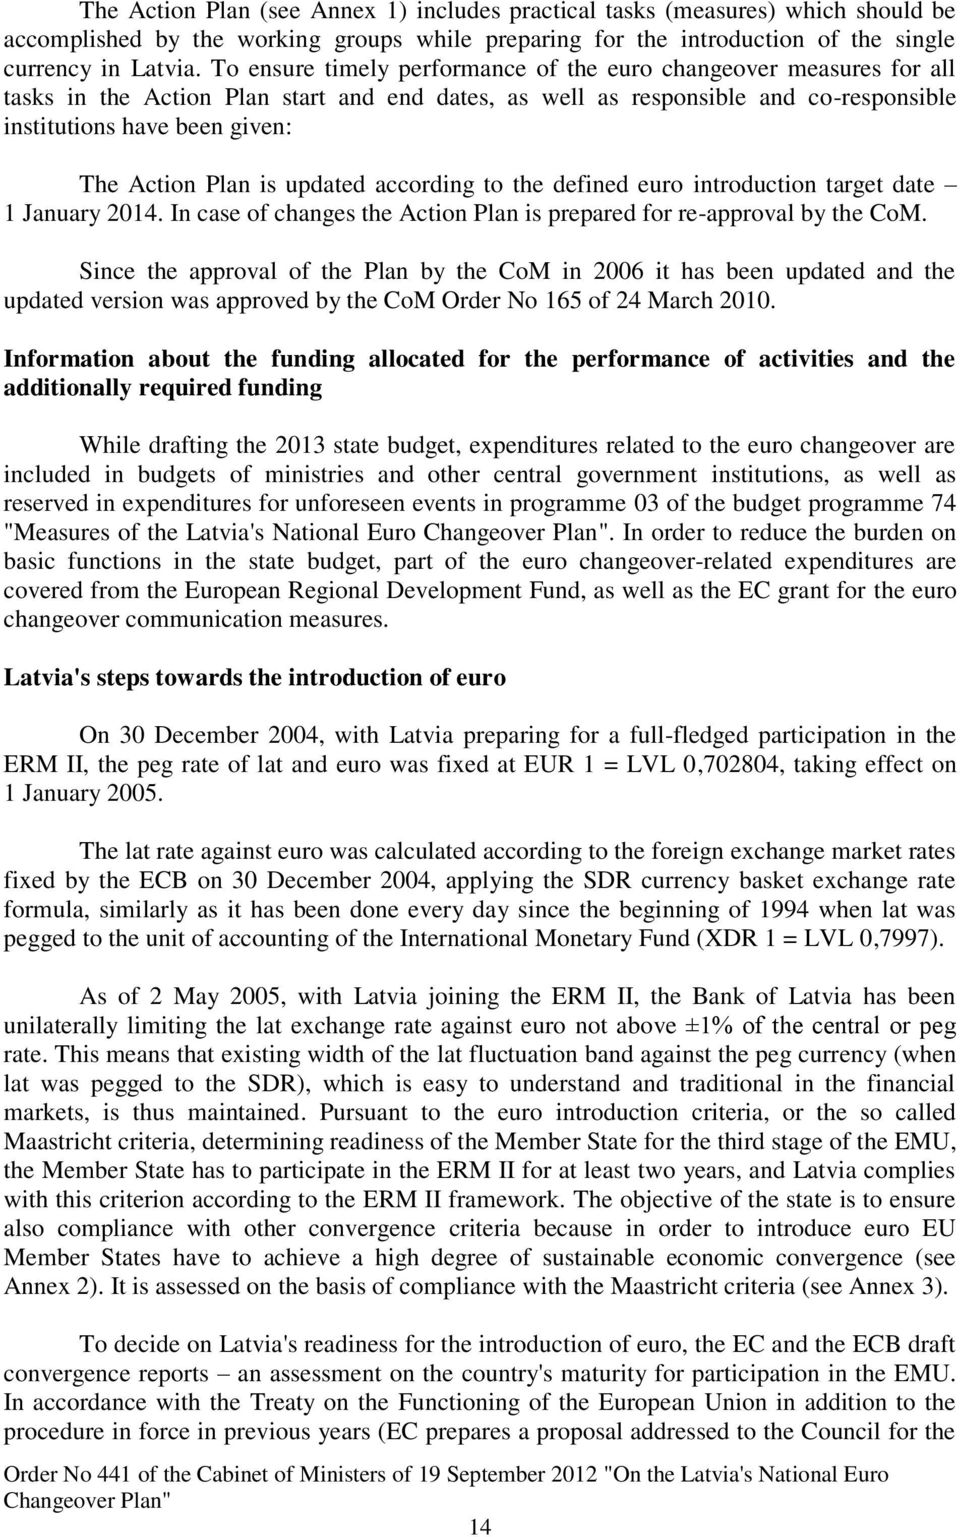 updated according to the defined euro introduction target date 1 January. In case of changes the Action Plan is prepared for re-approval by the CoM.